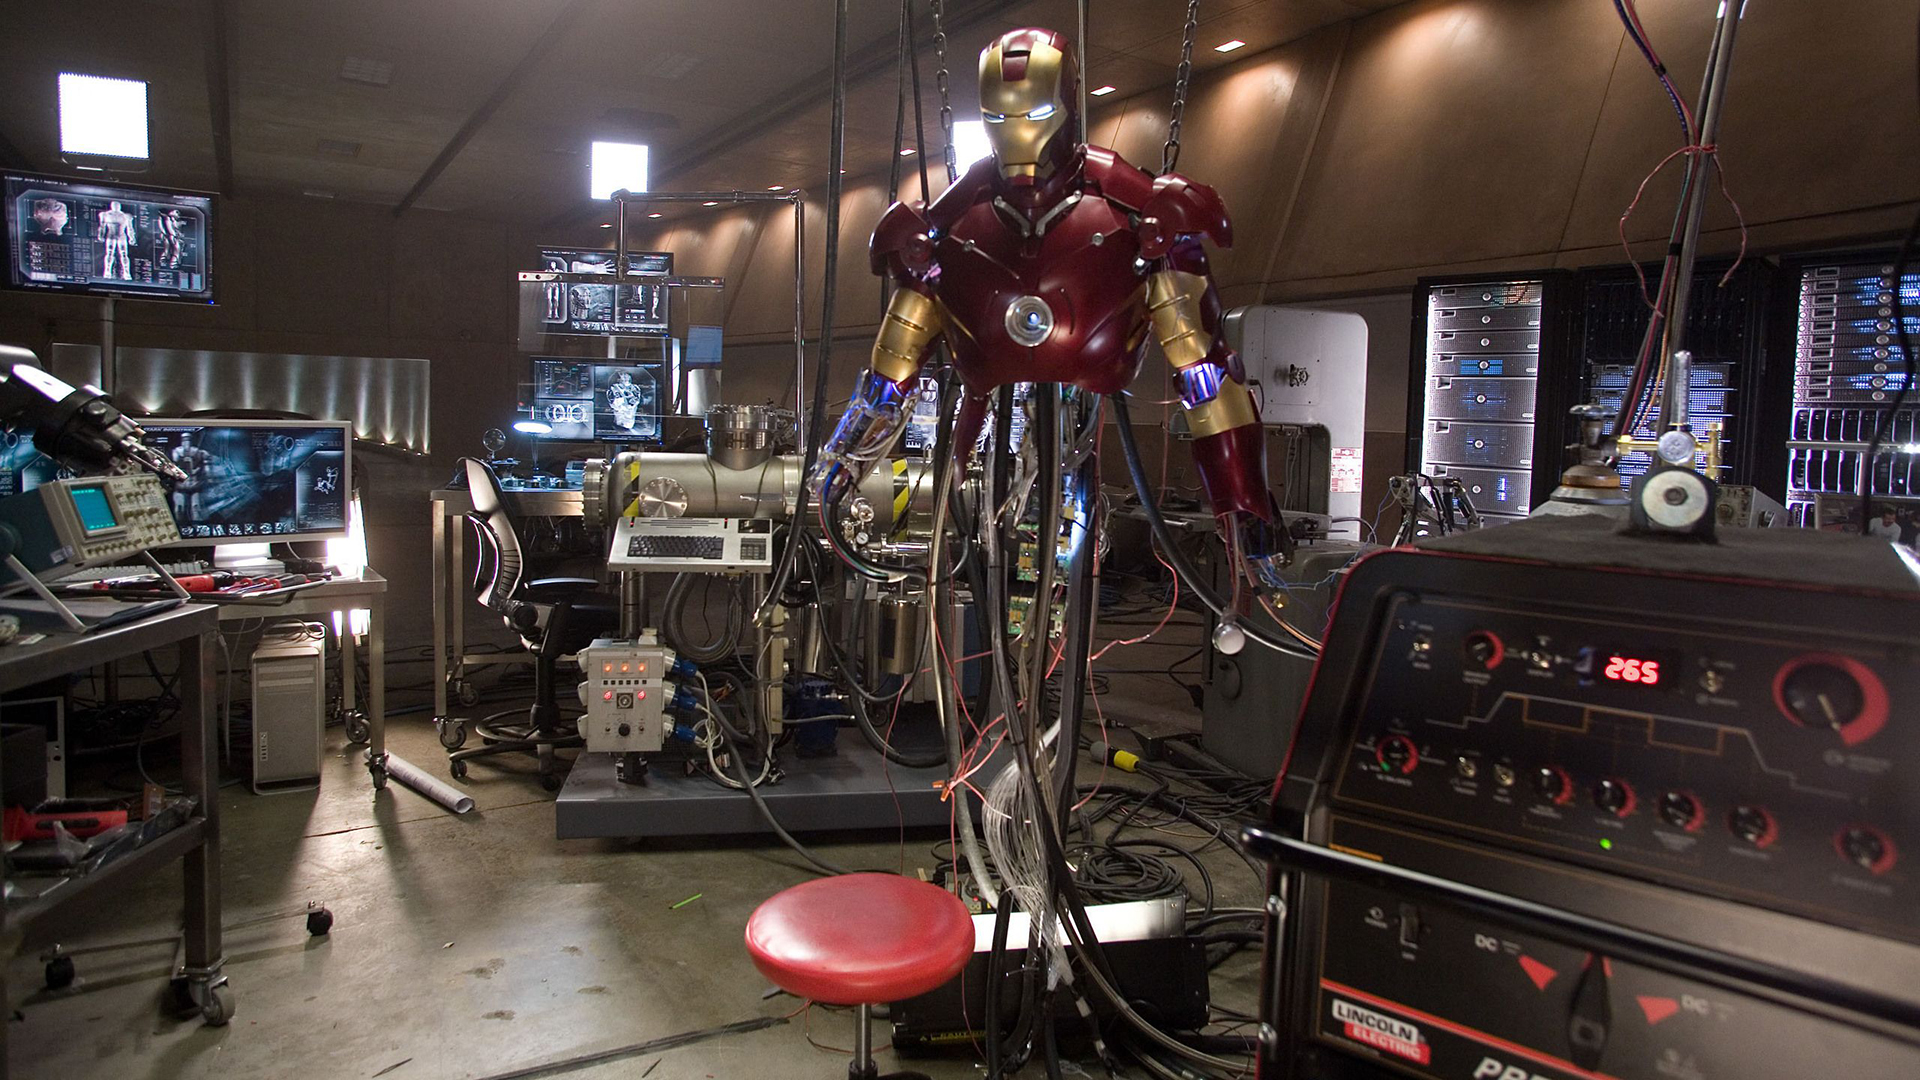 Iron Man suit maintenance. Virtual background to use on Zoom, Microsoft Teams, Skype, Google Meet, WebEx or any other compatible app.